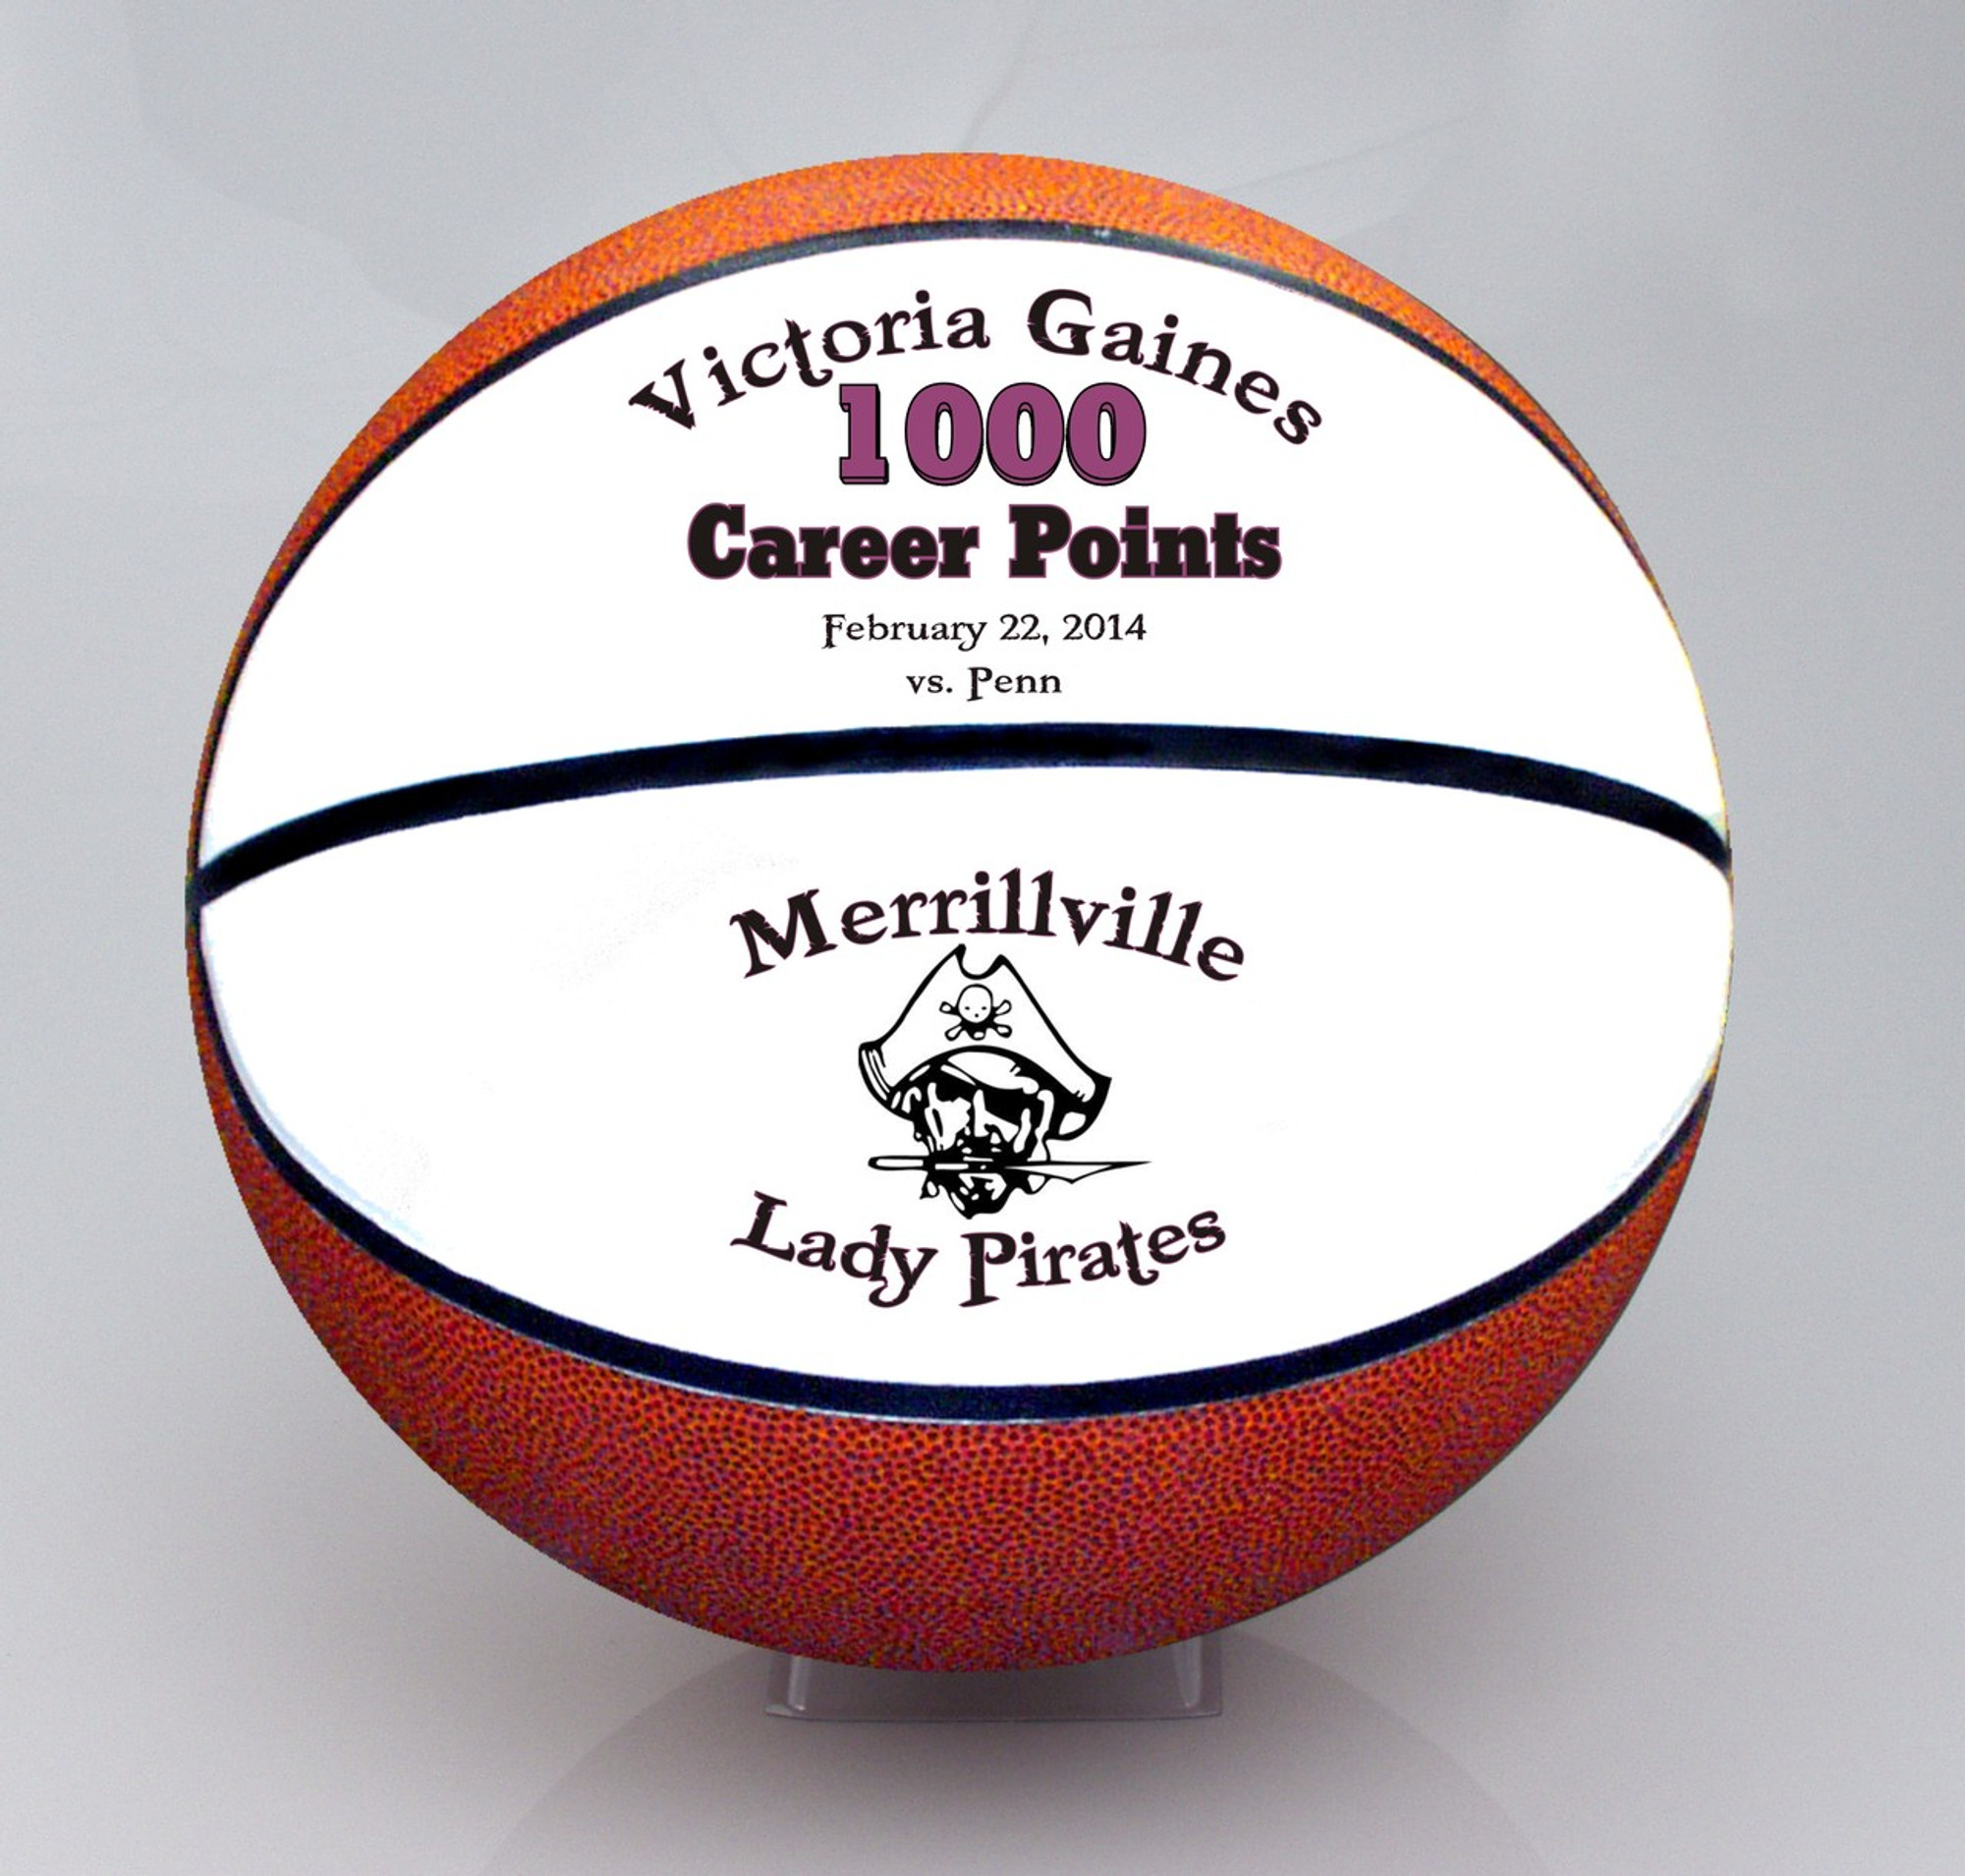 fb513f46daf Personalized Split Panel Fullsize Basketball - Creative Laser Solutions